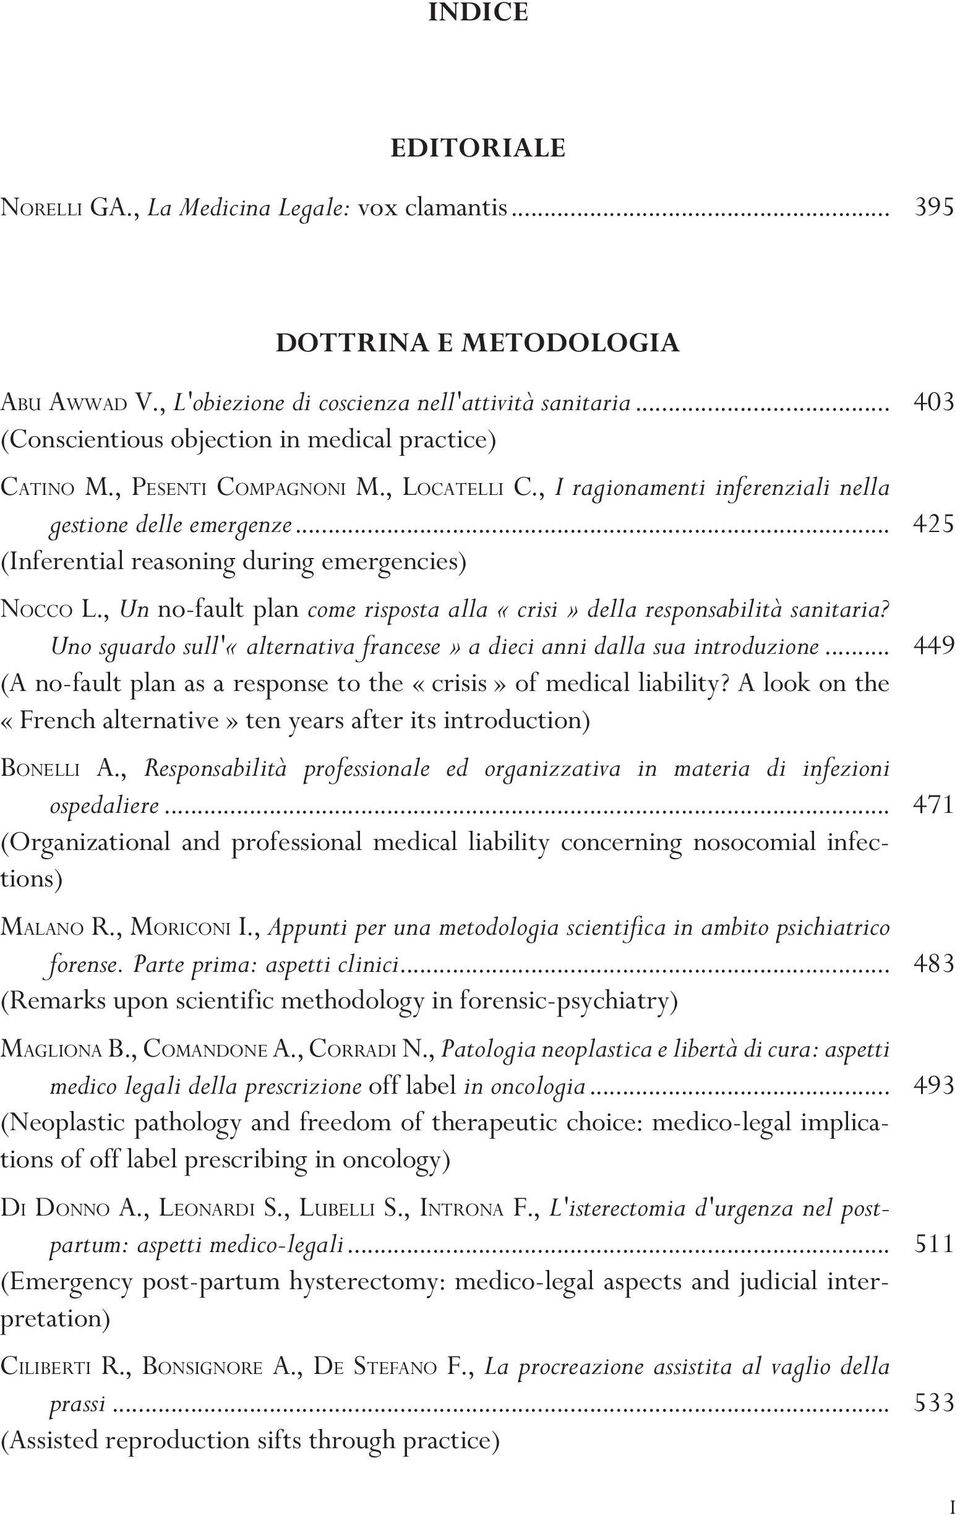 .. 425 (Inferential reasoning during emergencies) NOCCO L., Un no-fault plan come risposta alla «crisi» della responsabilità sanitaria?